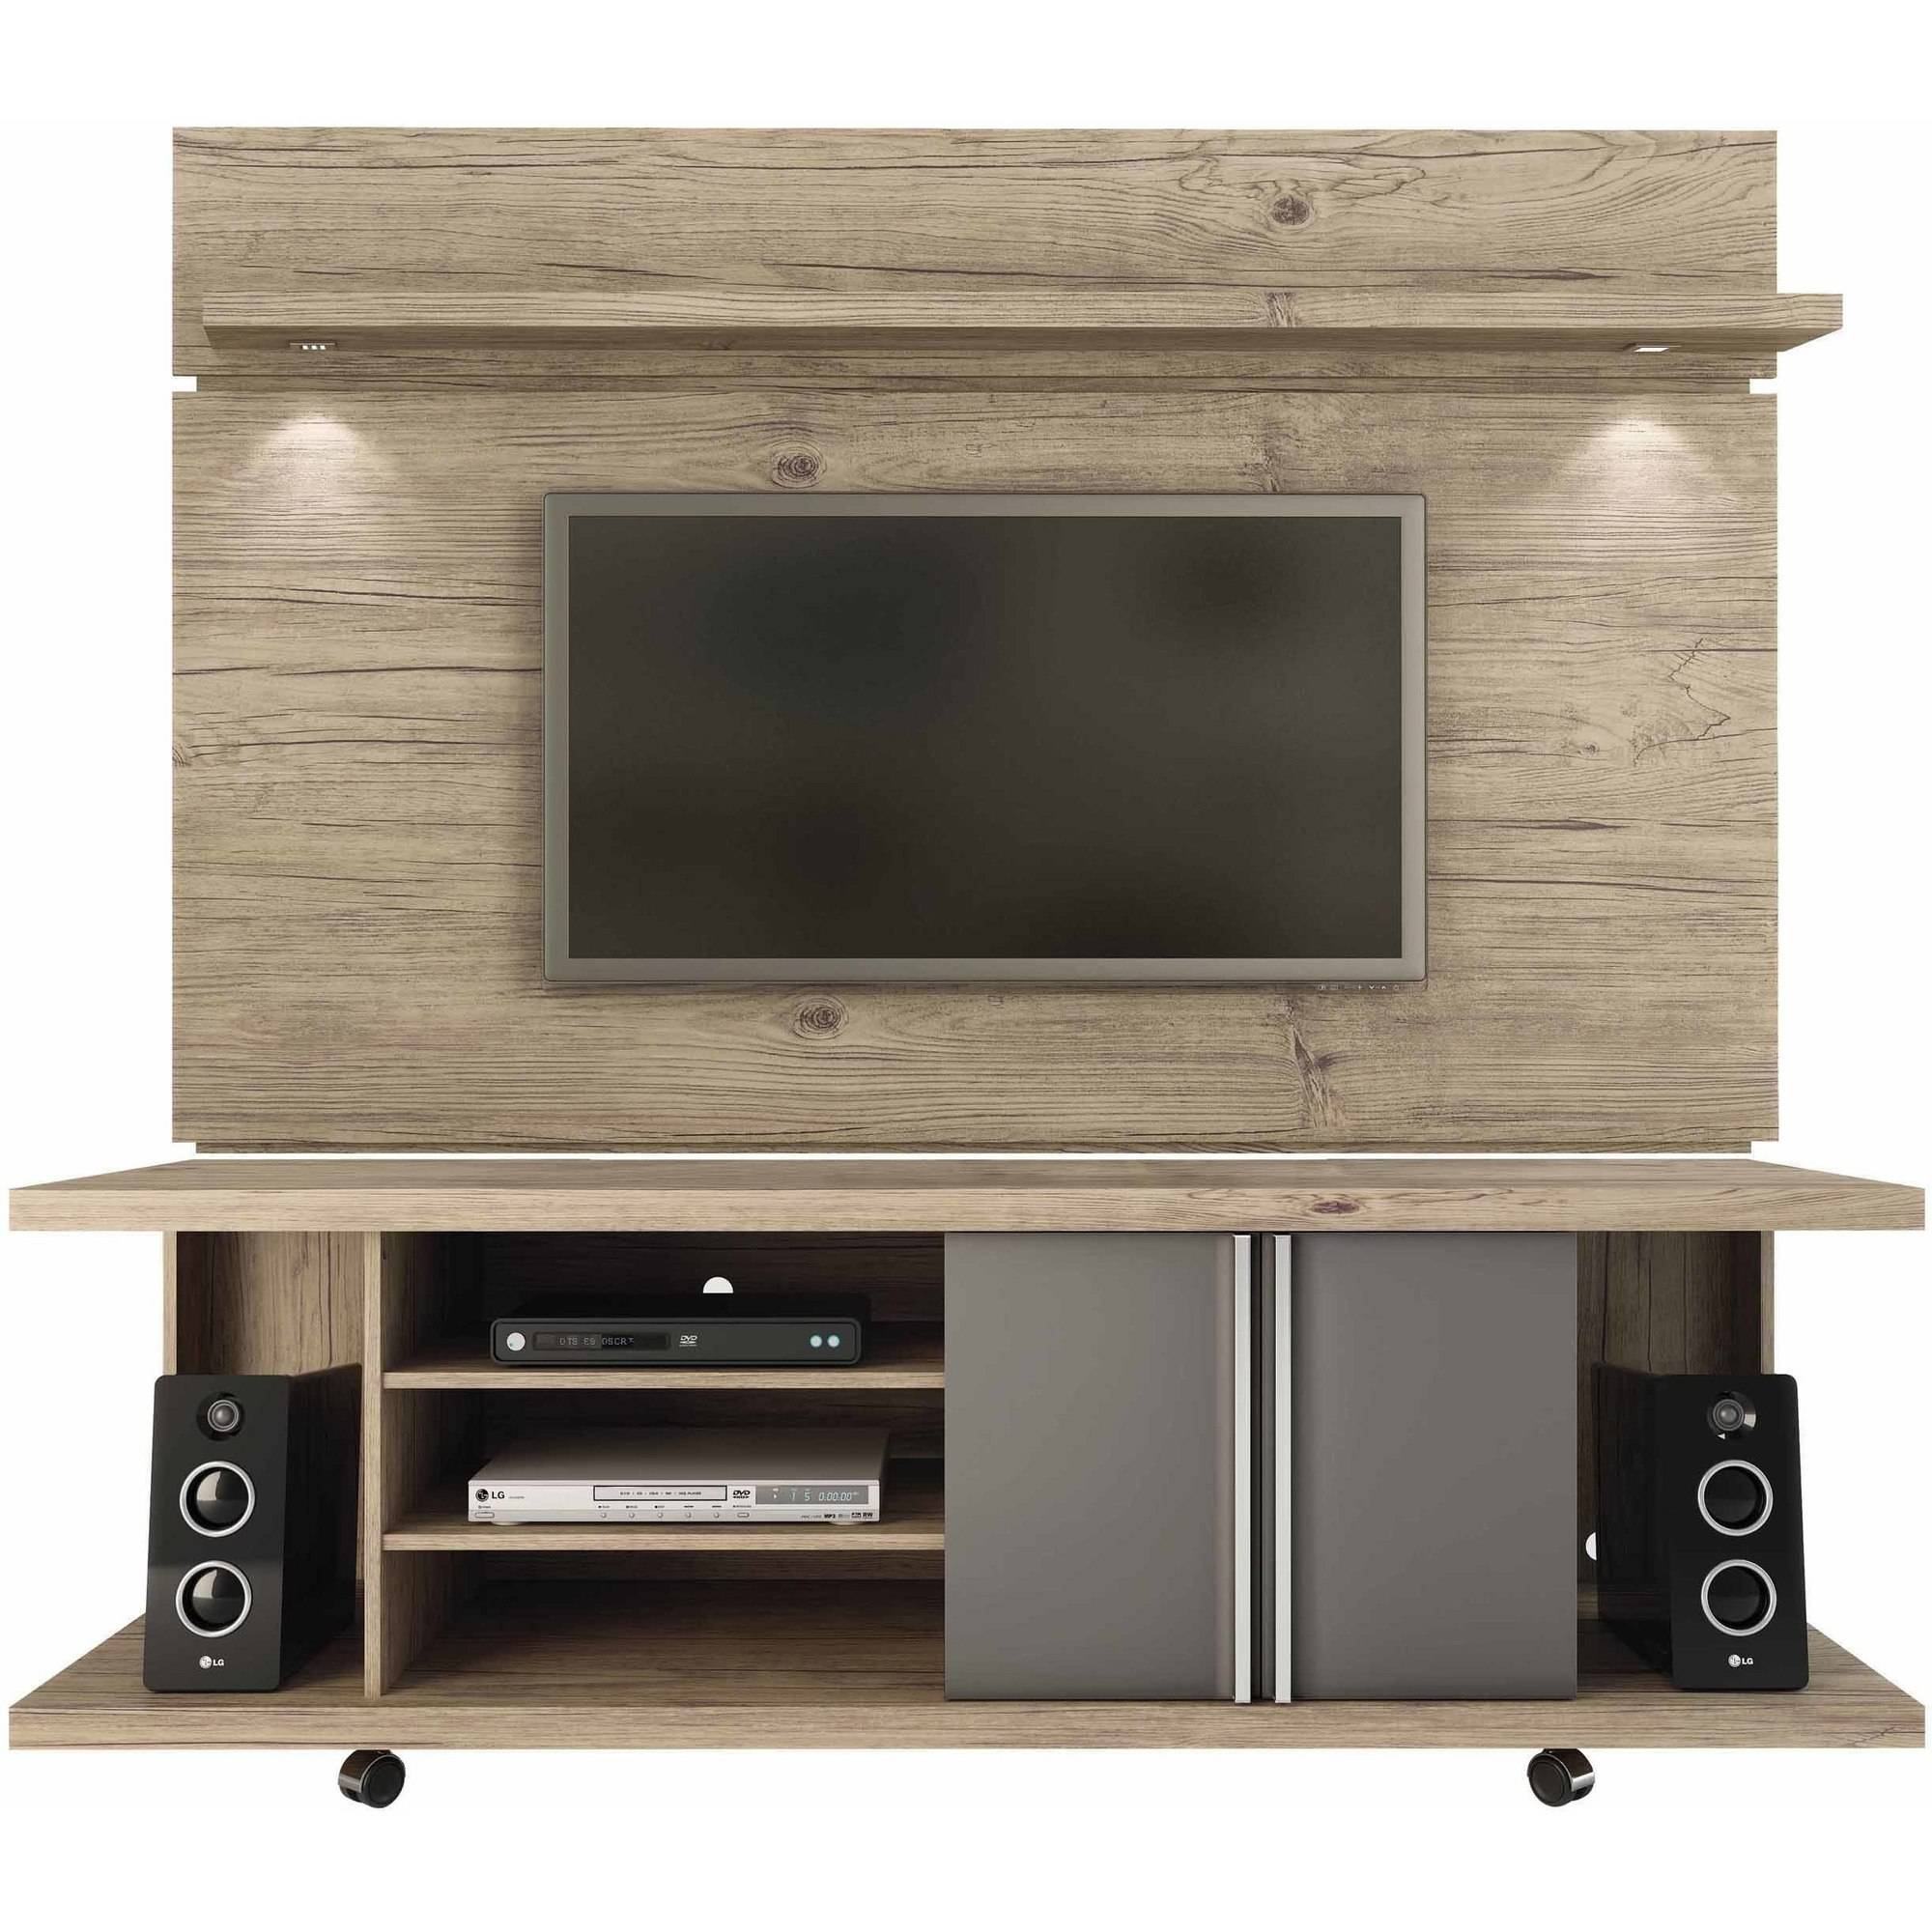 Manhattan Comfort Carnegie TV Stand and Park 1.8 Floating Wall TV Panel with LED Lights for TVs up to 60\